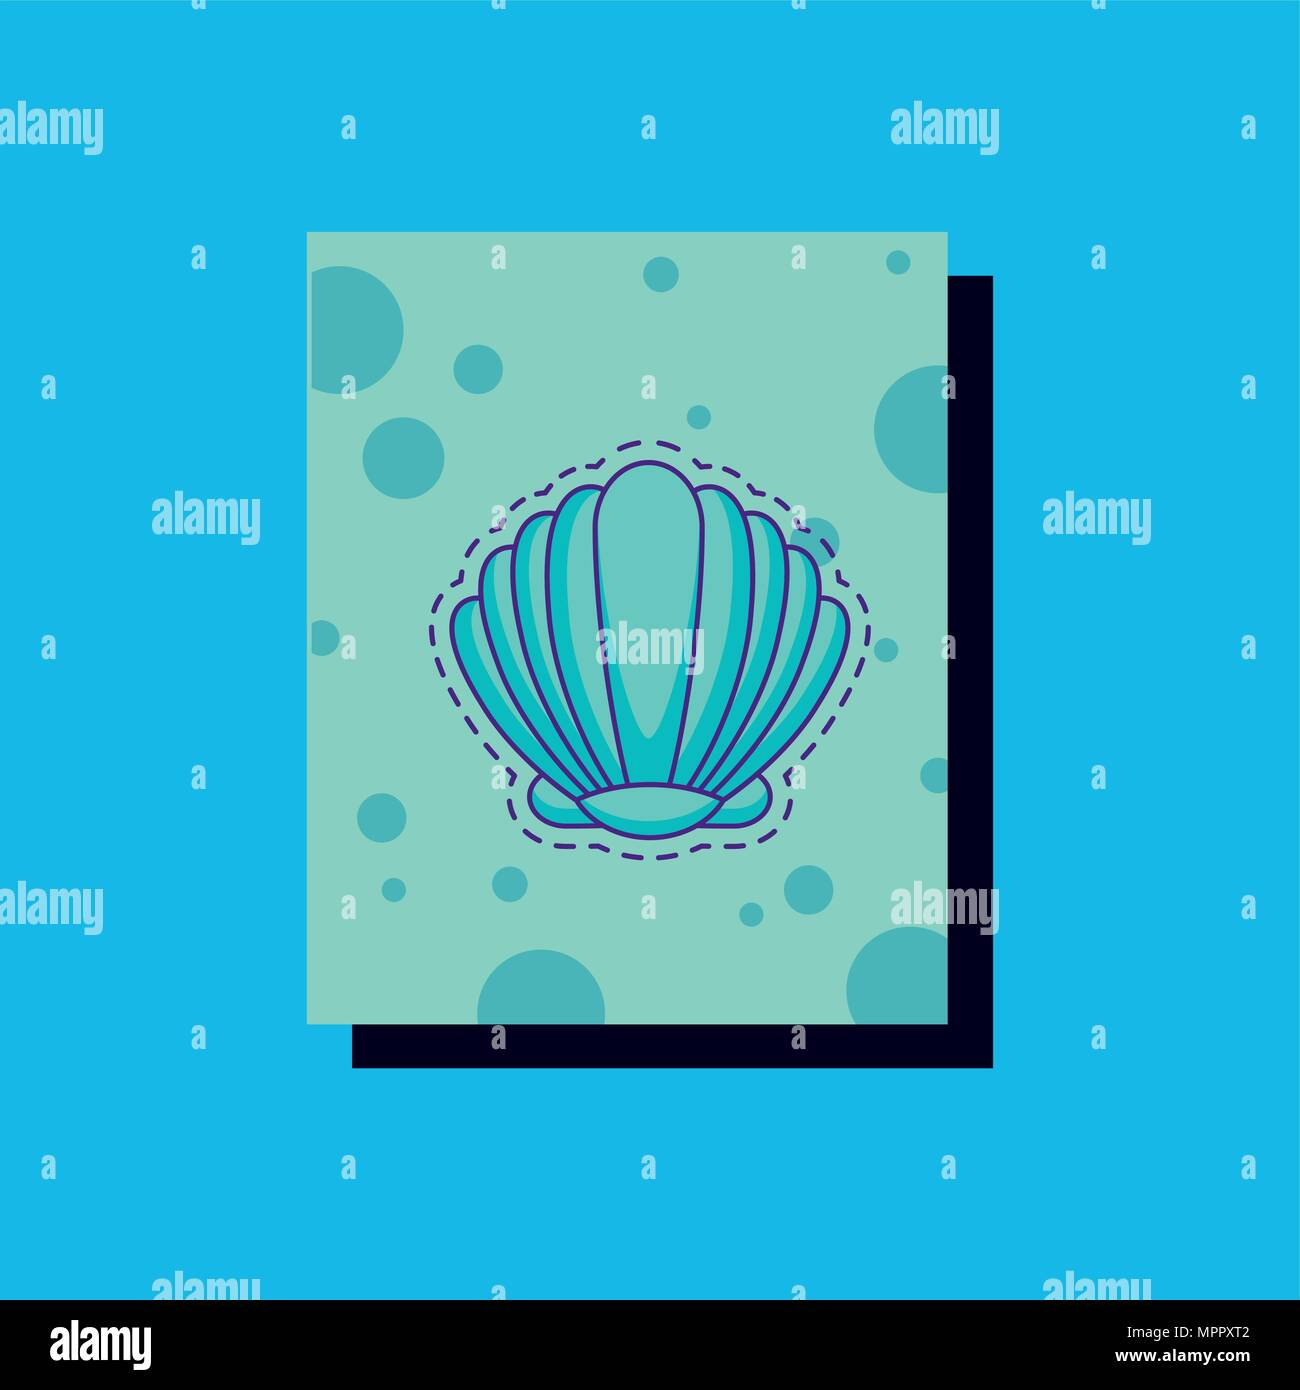 seashell icon over blue background, colorful design. vector illustration - Stock Vector